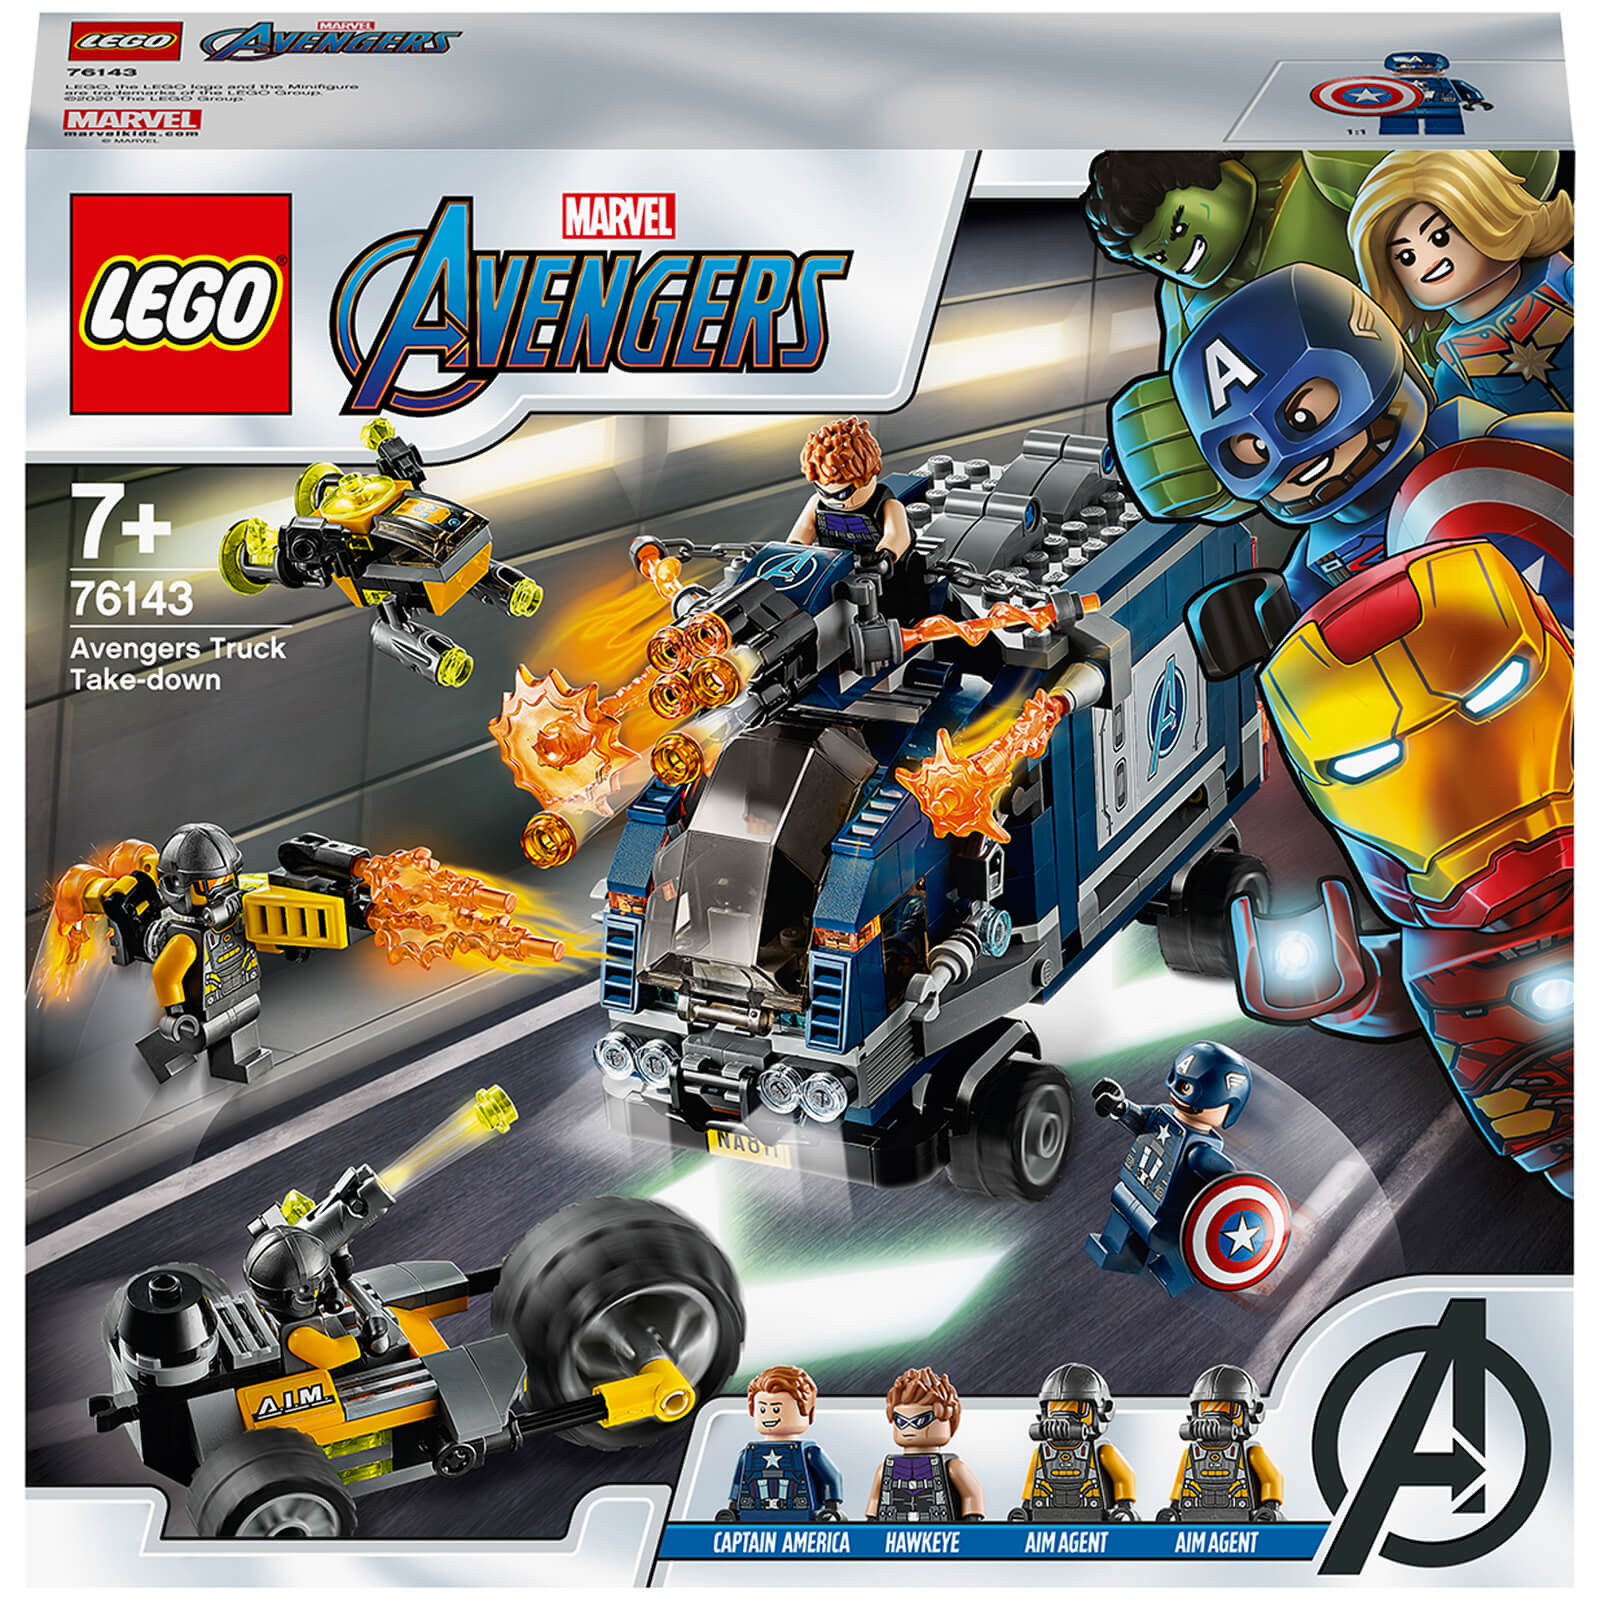 Image of LEGO Super Heroes: Marvel Avengers Truck Take-down Set (76143)